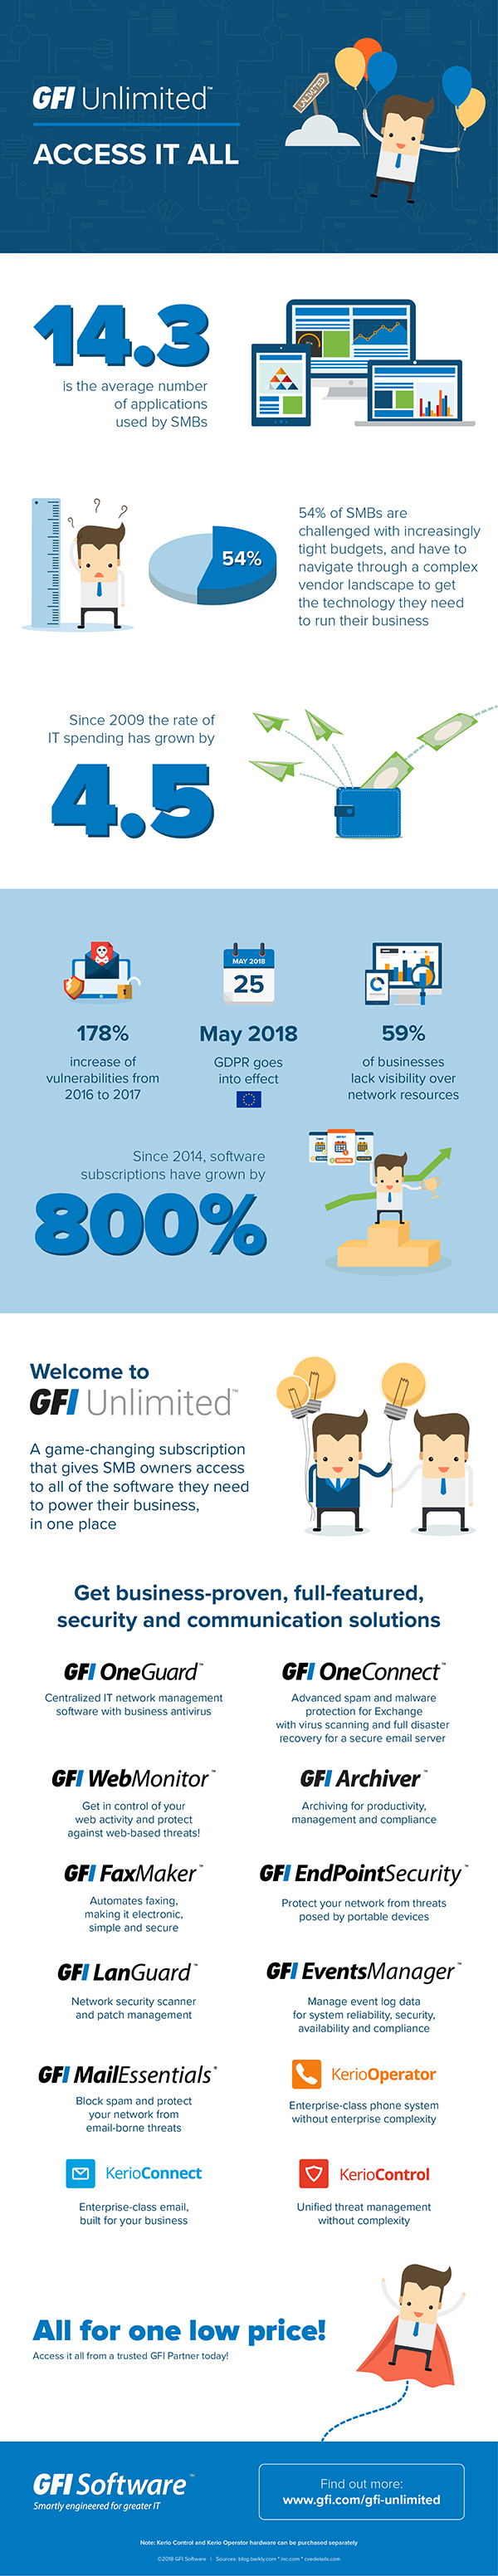 GFI Unlimited Infographic